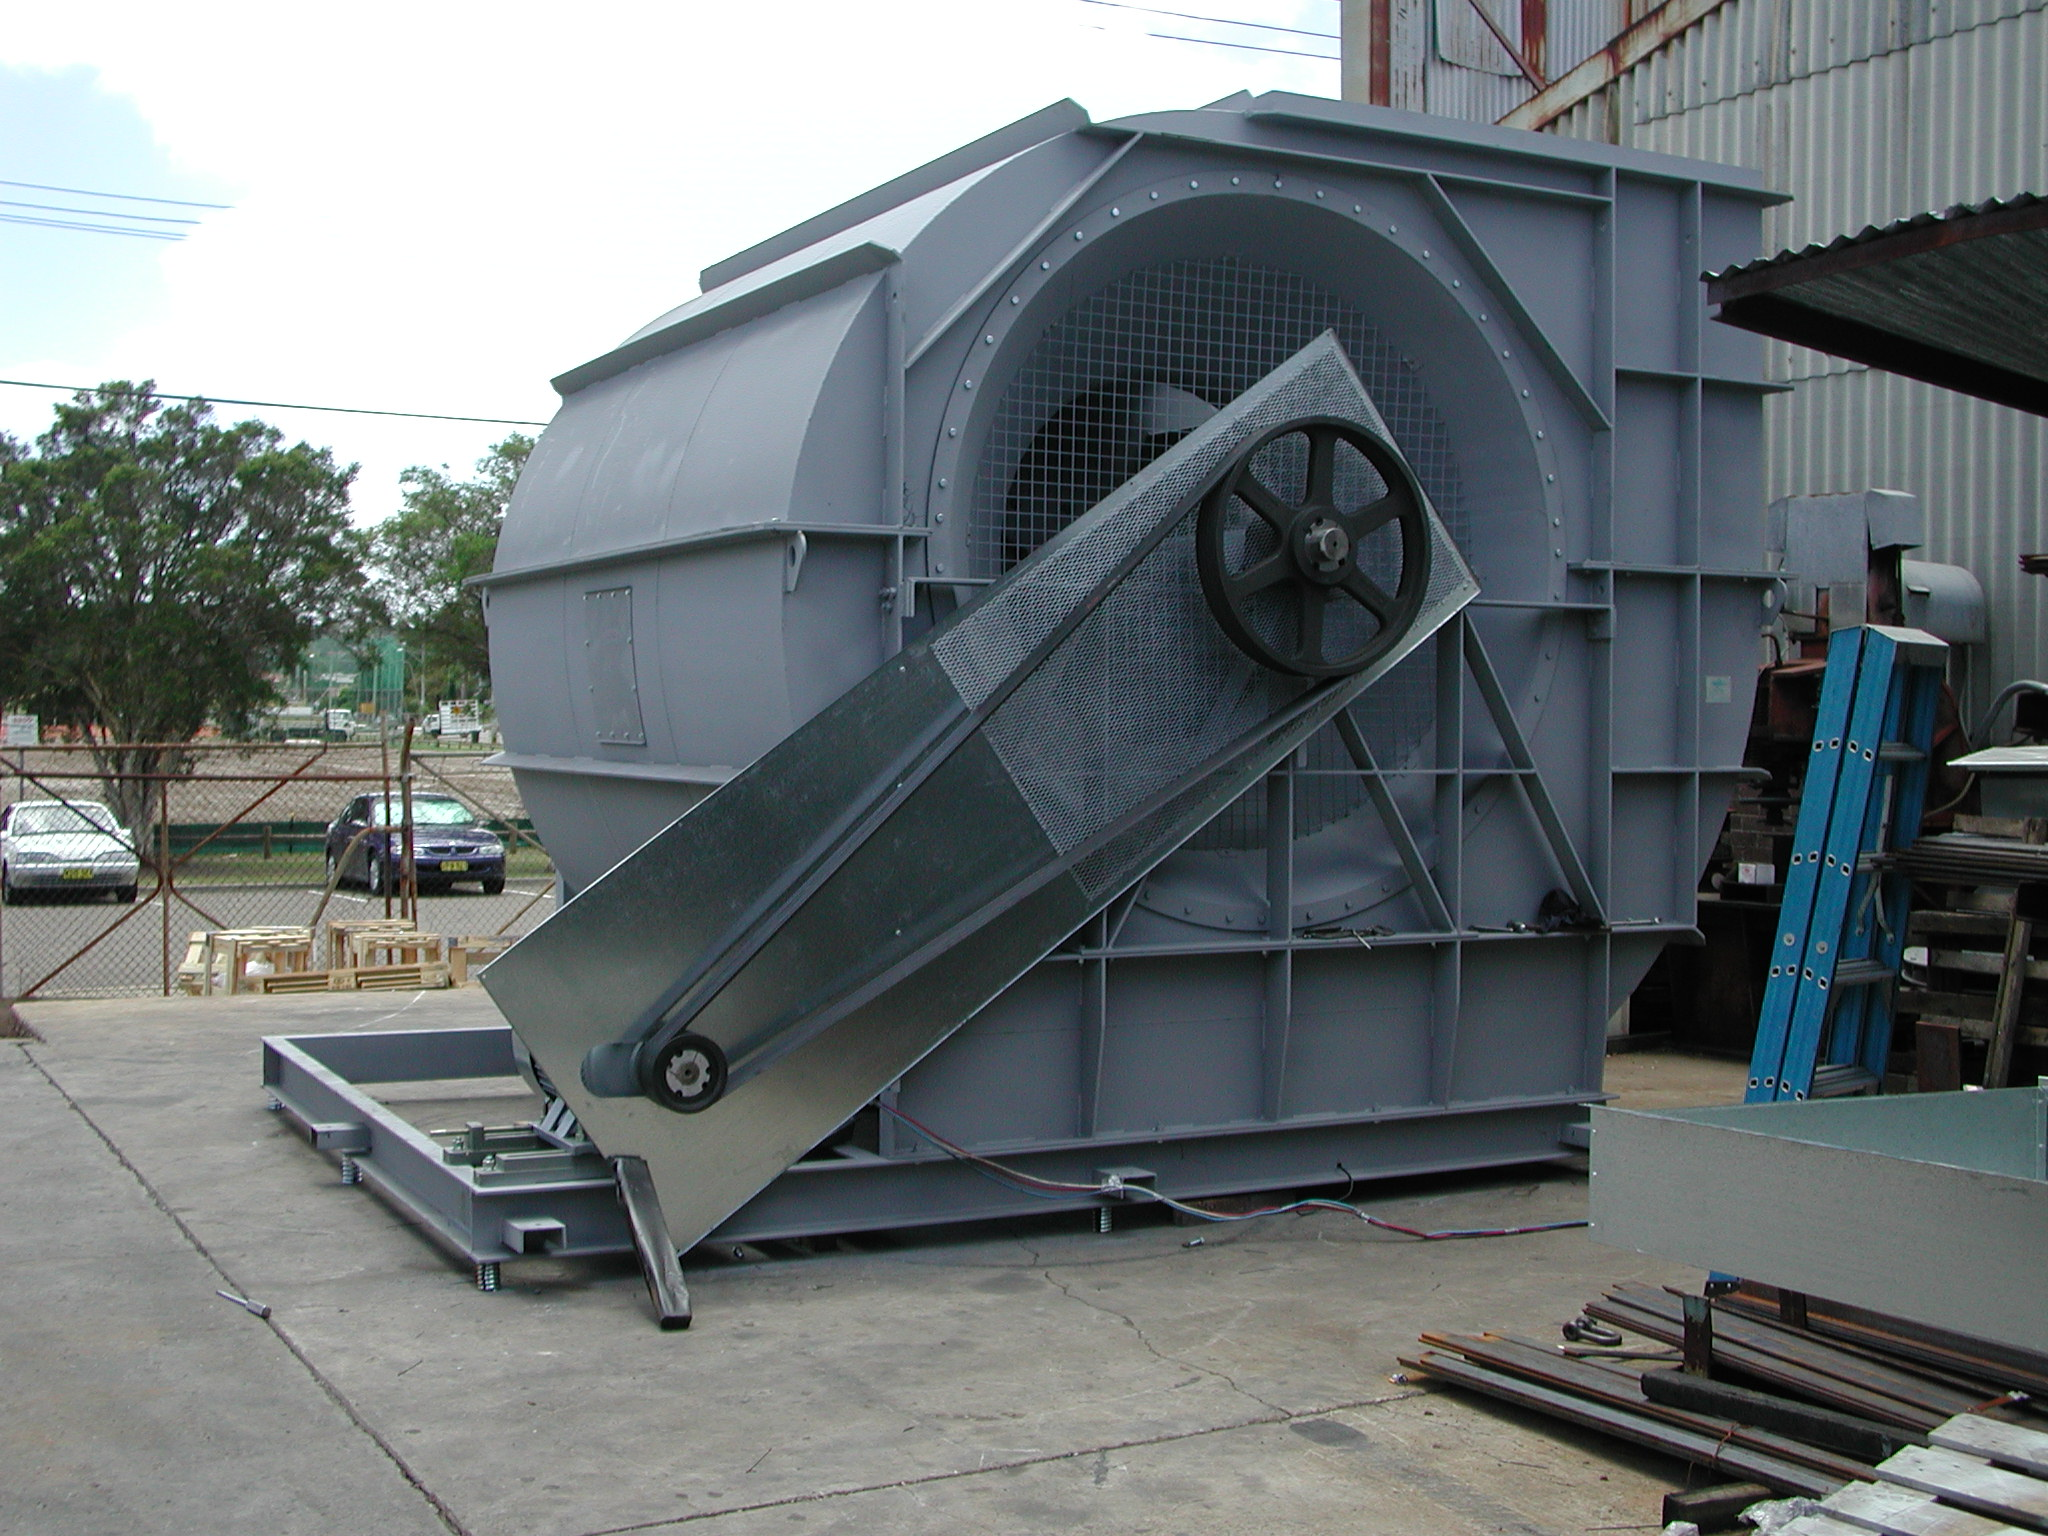 187 Very Large Centrifugal Fan